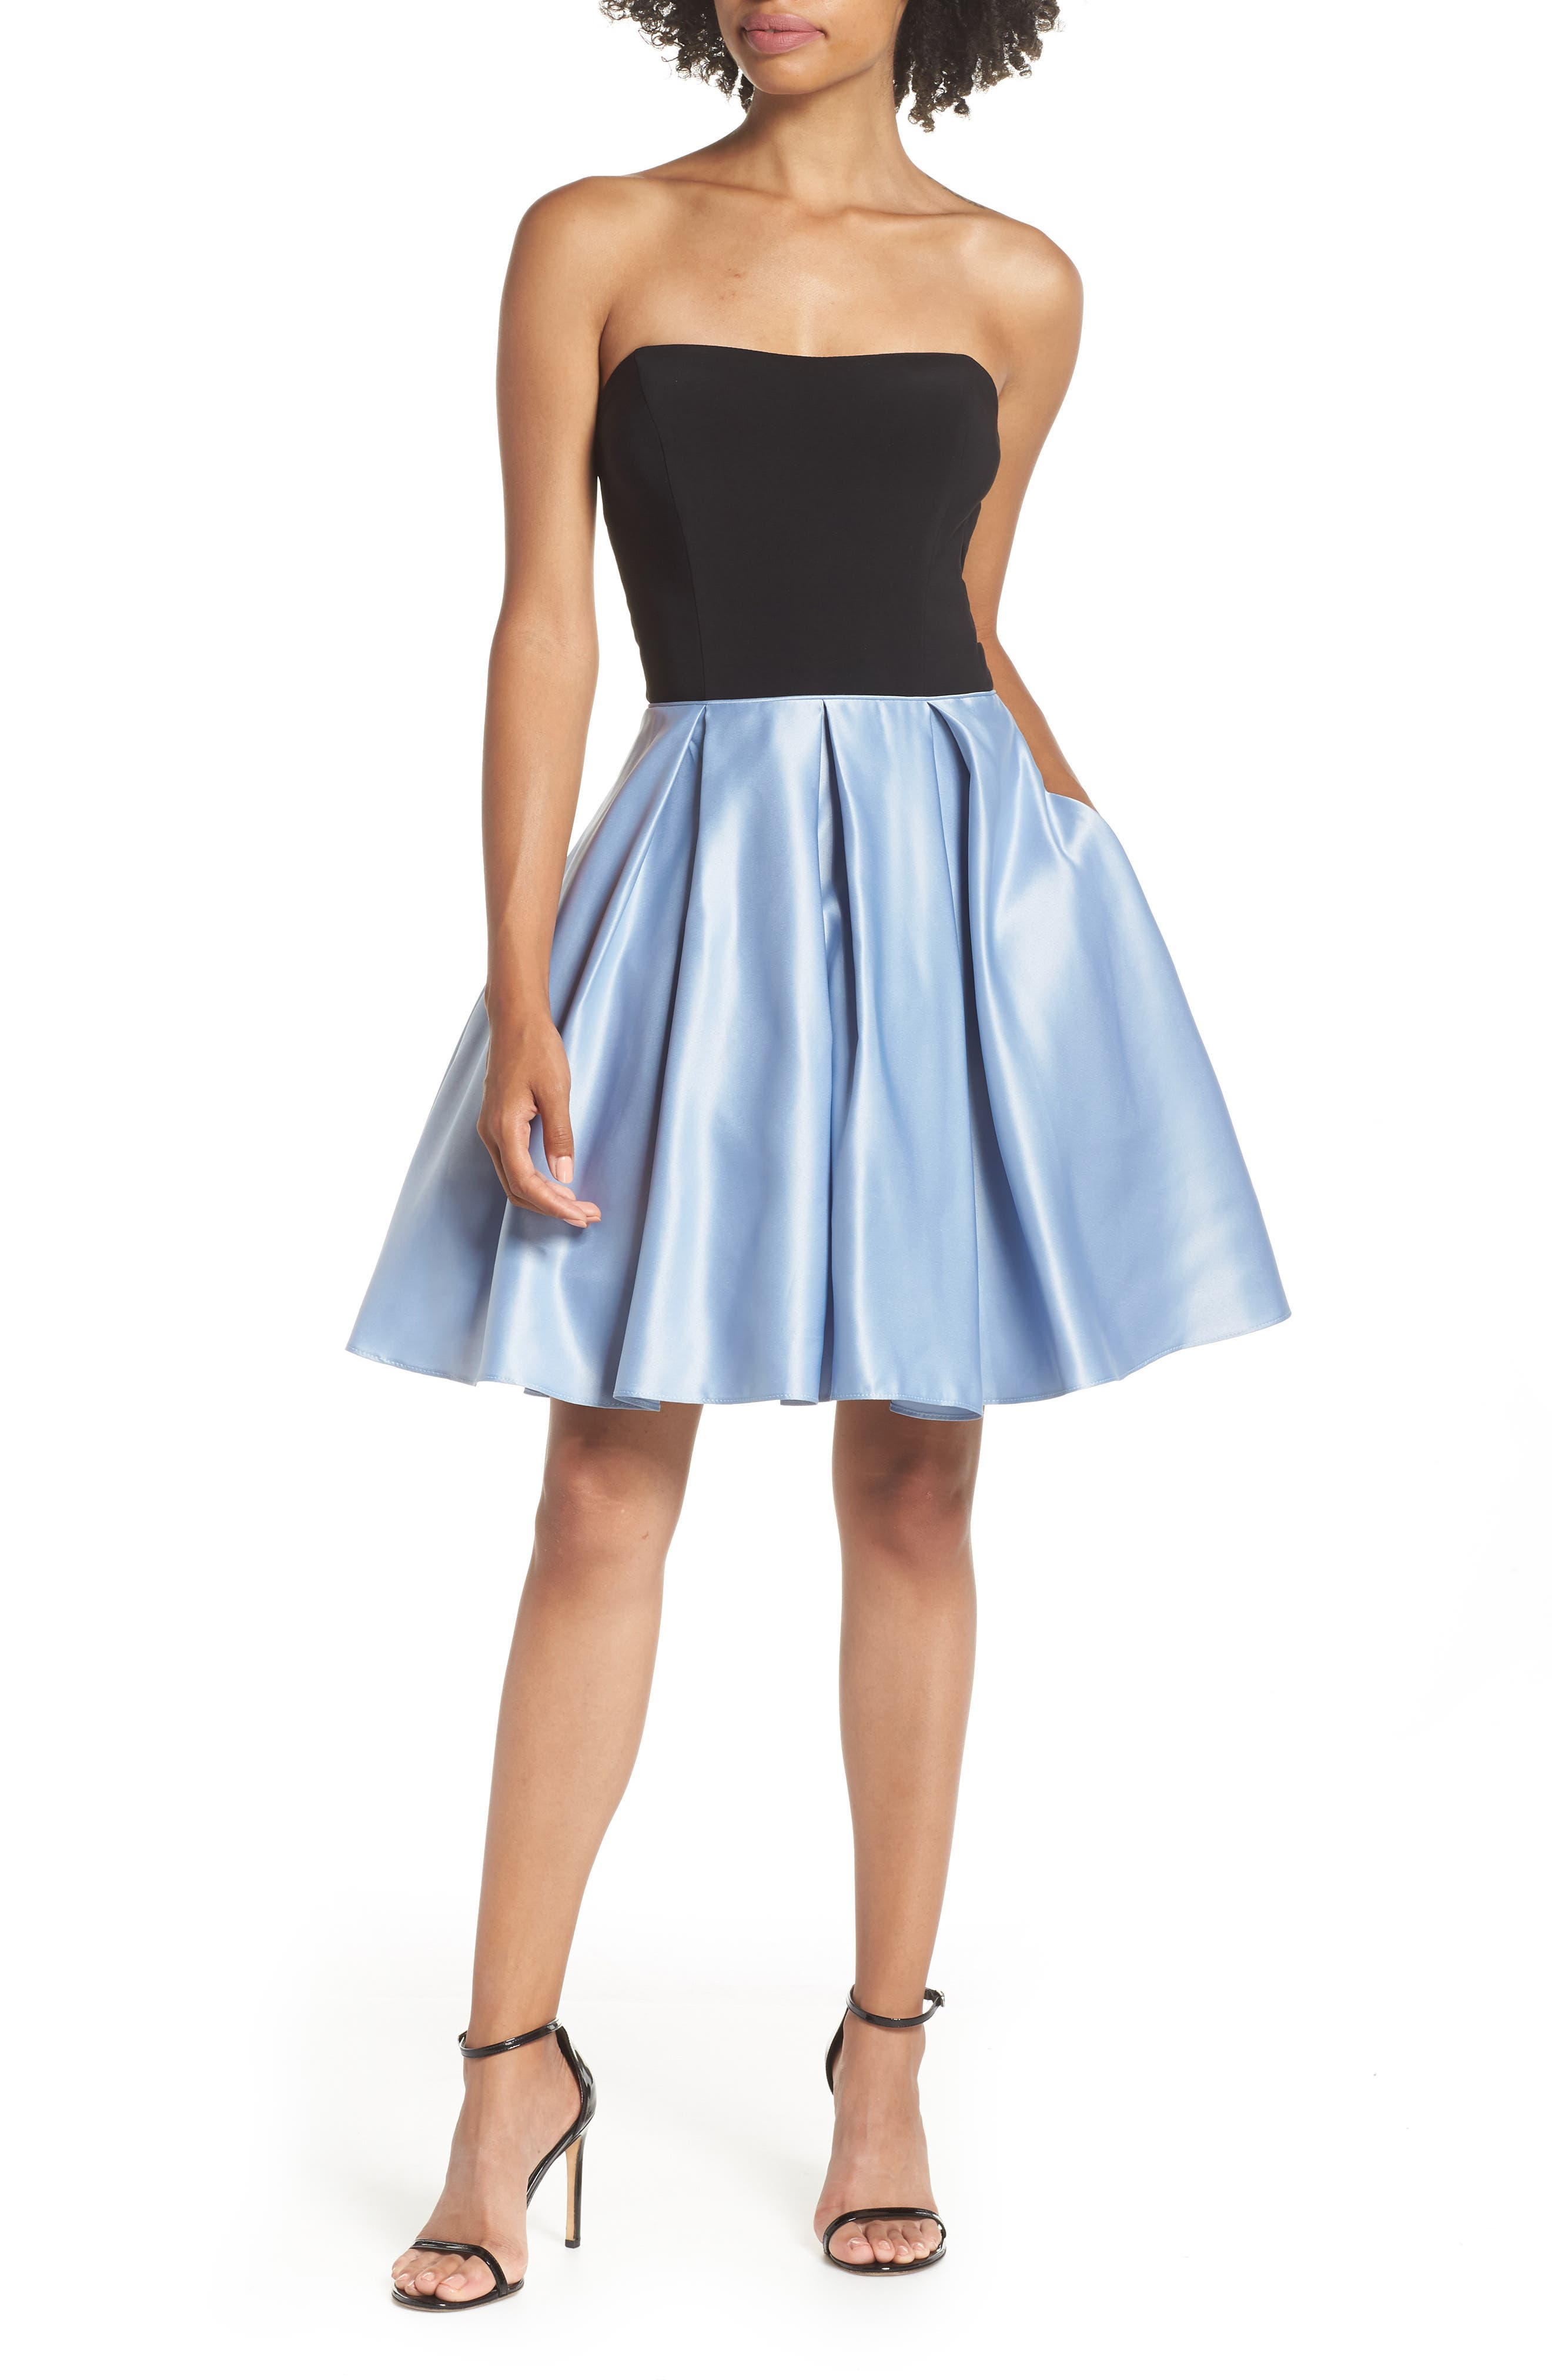 Blondie Nites Strapless Satin Skirt Fit & Flare Dress, Blue